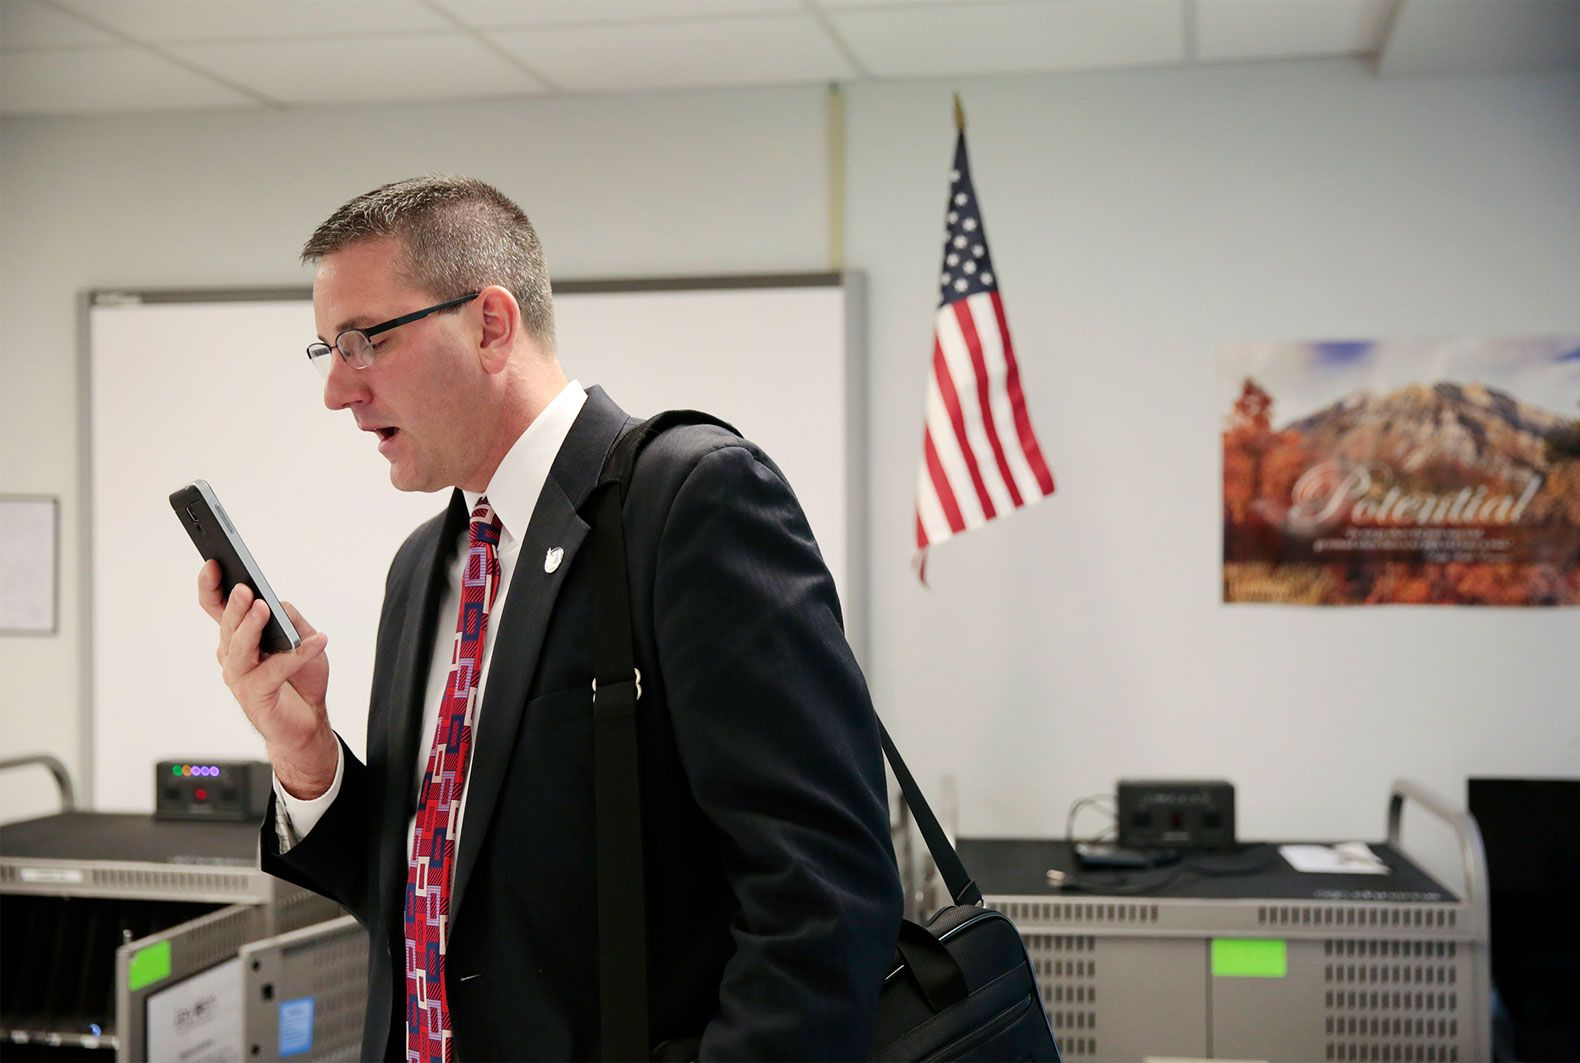 Superintendent Nick Polyak uses the Voxer app to talk to his network of hundreds of other school administrators around the country.